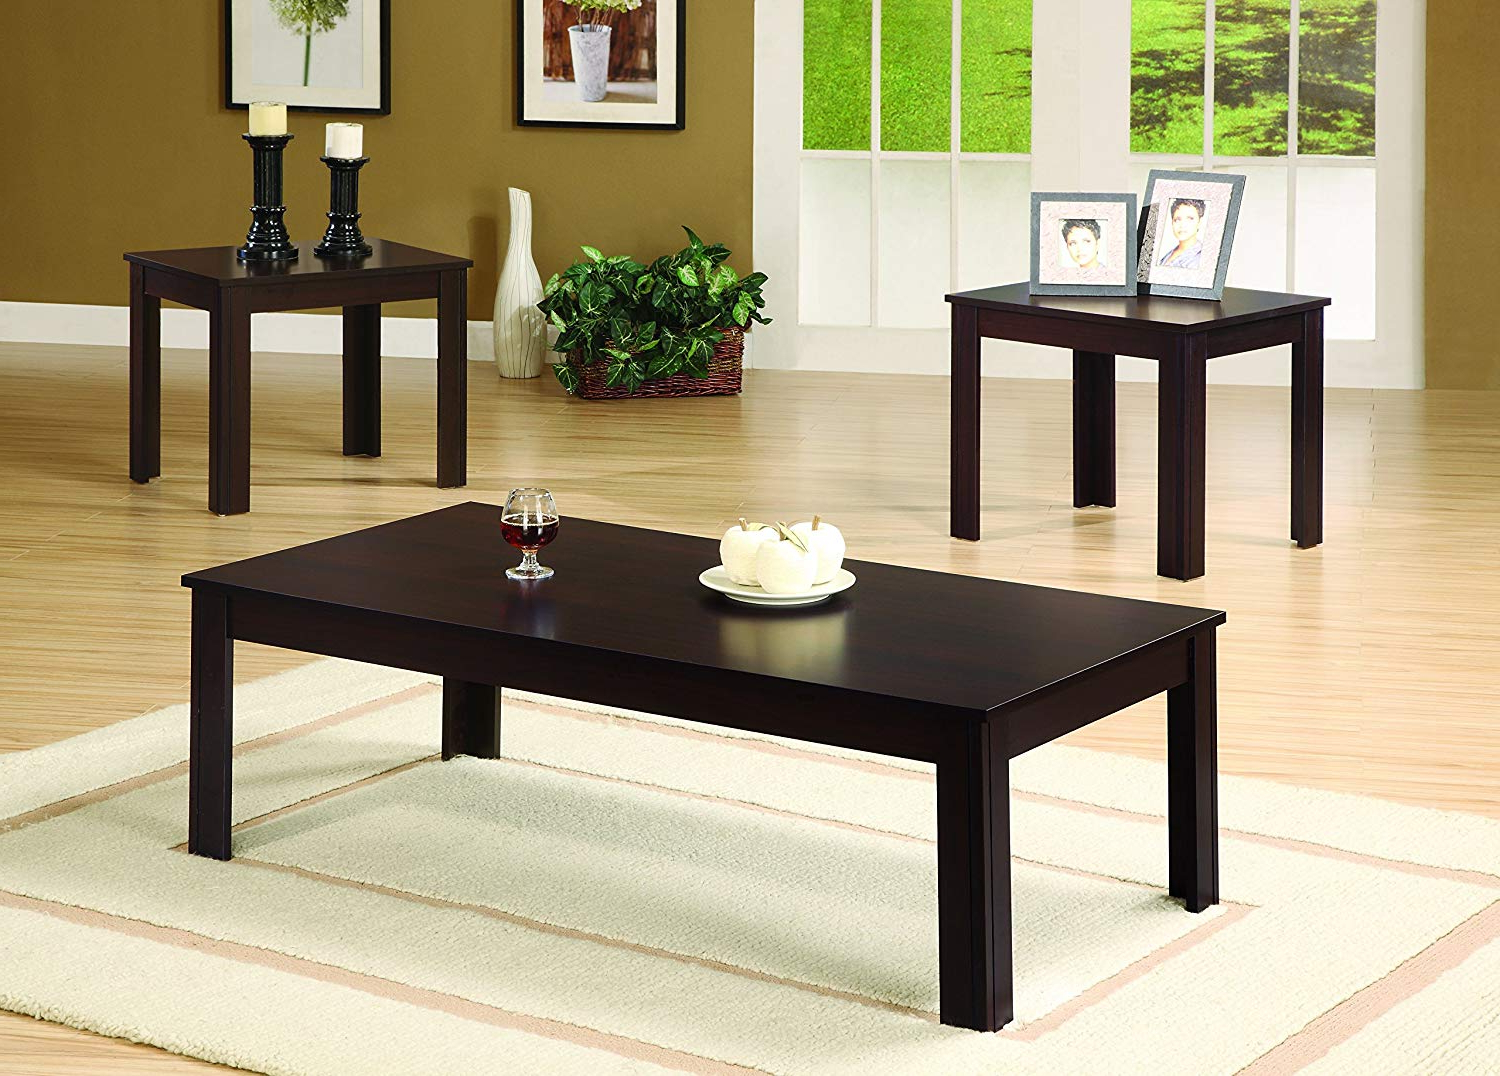 Acacia Dining Tables With Black Victor Legs With Well Known 3 Piece Occasional Table Set Cappuccino (View 24 of 25)